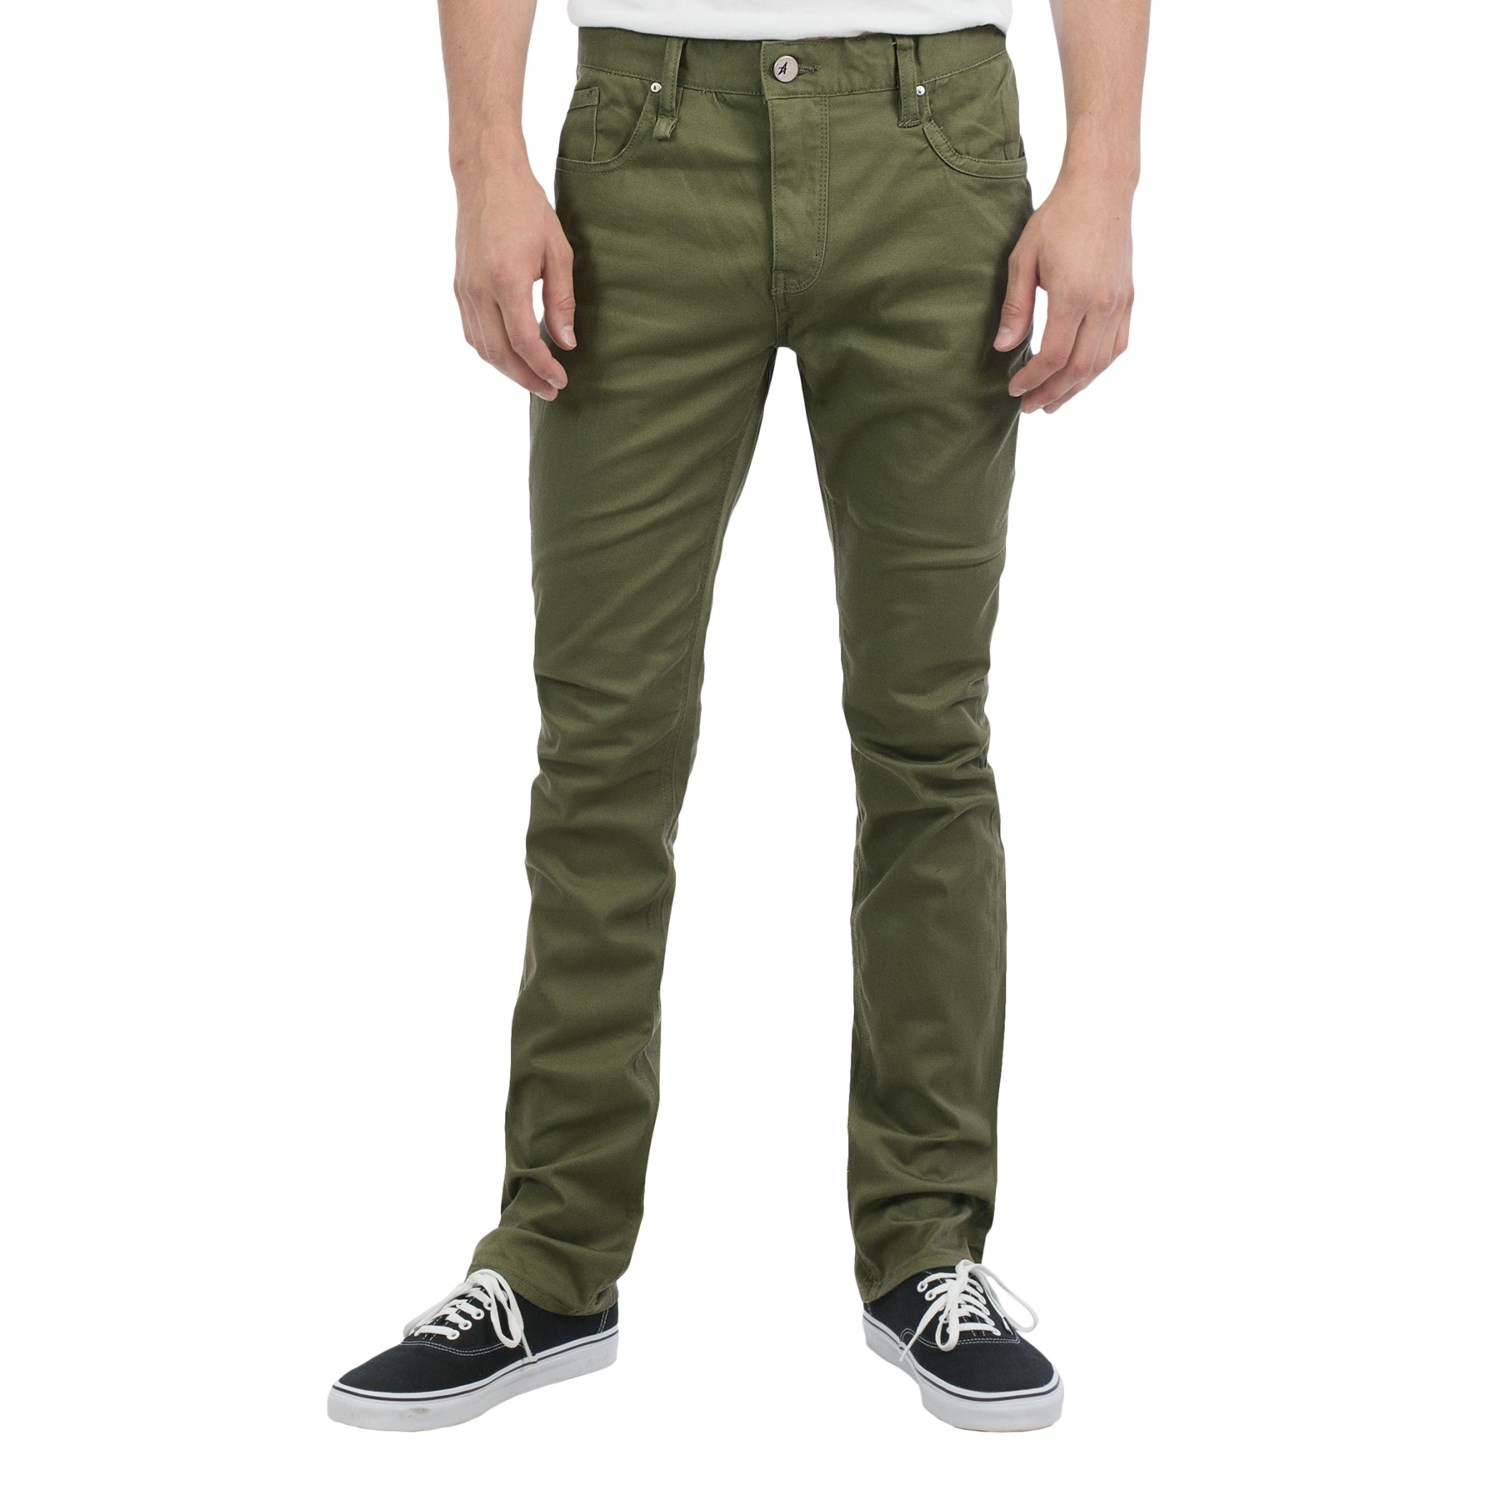 Whether you're thin, athletic, or stocky, here are the best khaki pants for your body type.